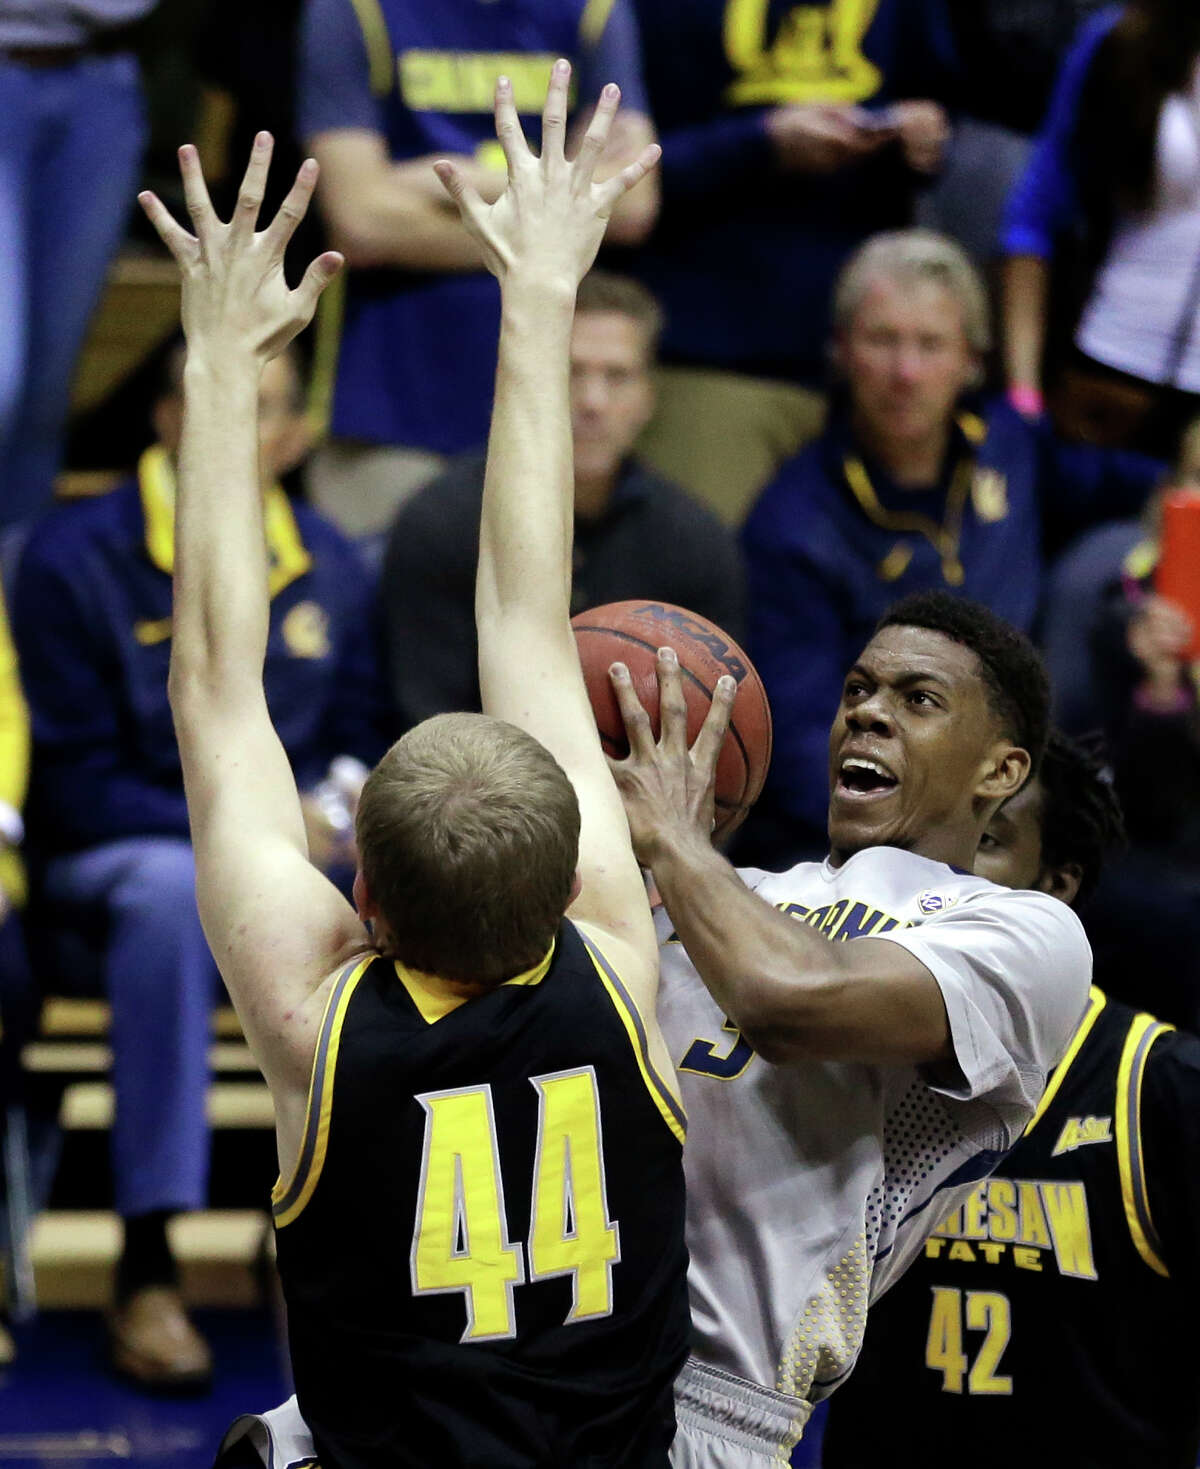 California's Tyrone Wallace, right, shoots against Kennesaw State's Justin Diecker in the second half of an NCAA college basketball game Sunday, Nov. 16, 2014, in Berkeley, Calif.